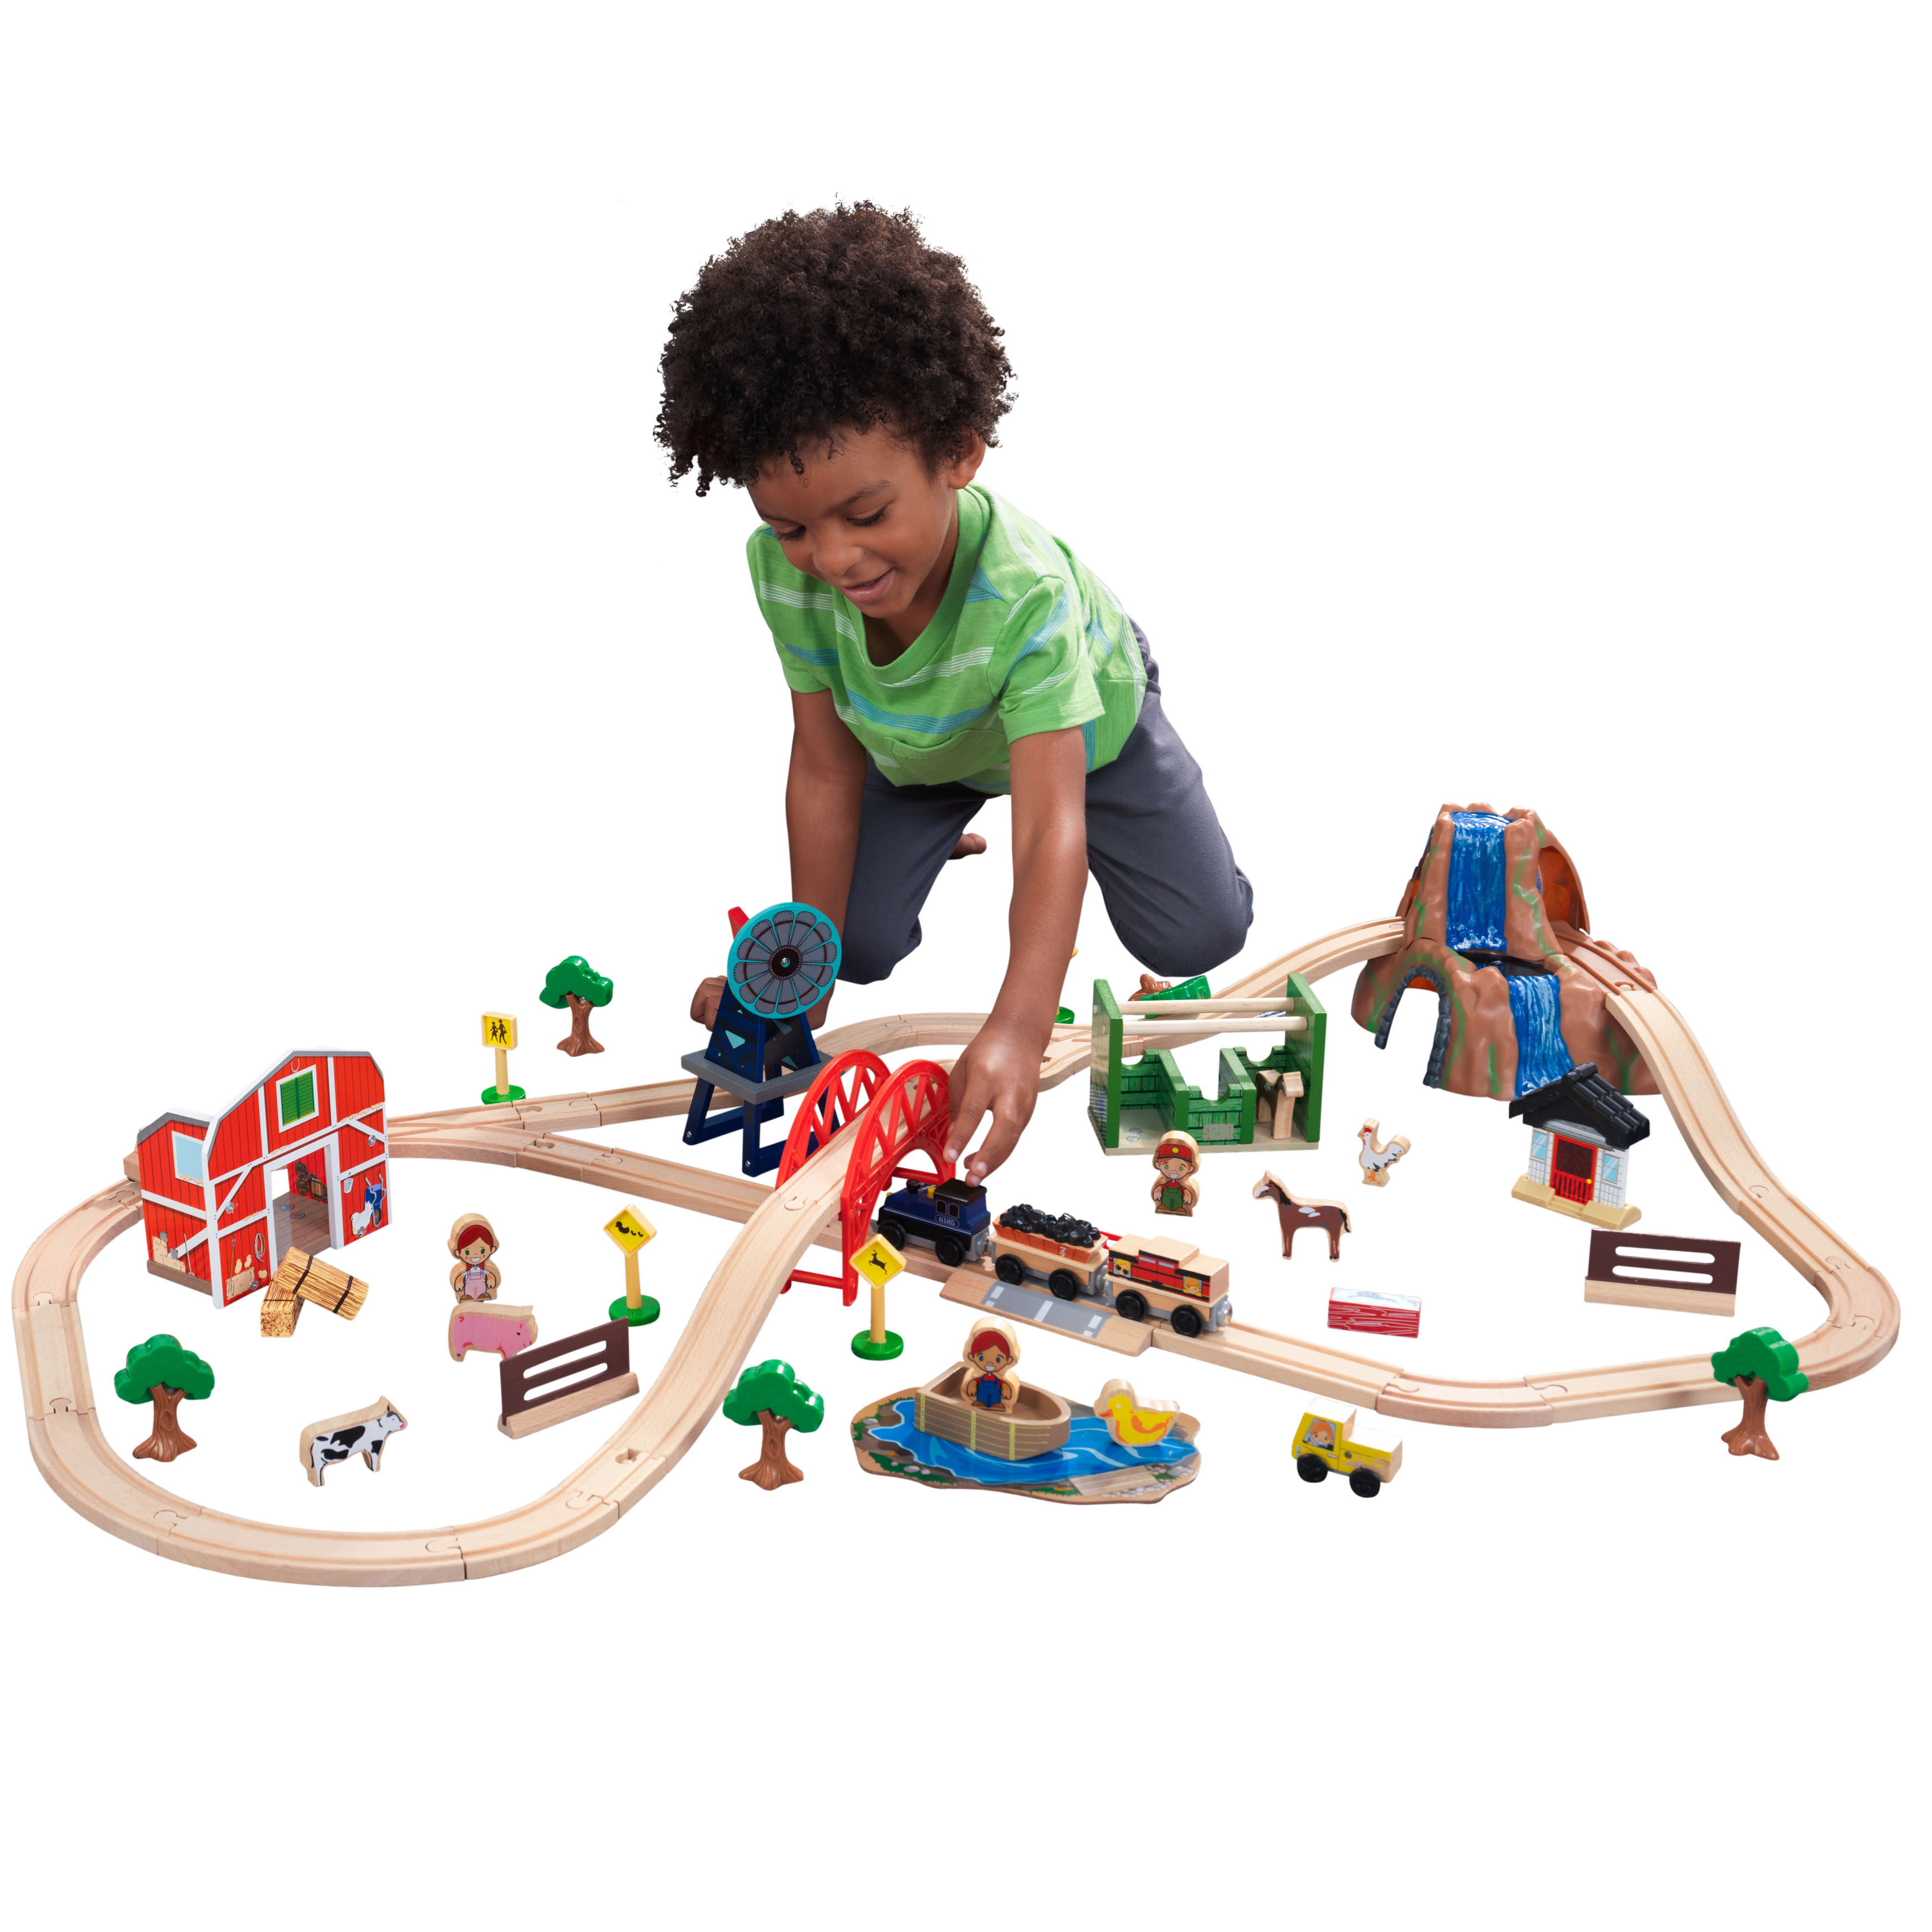 KidKraft Farm Train Set with 75 accessories included